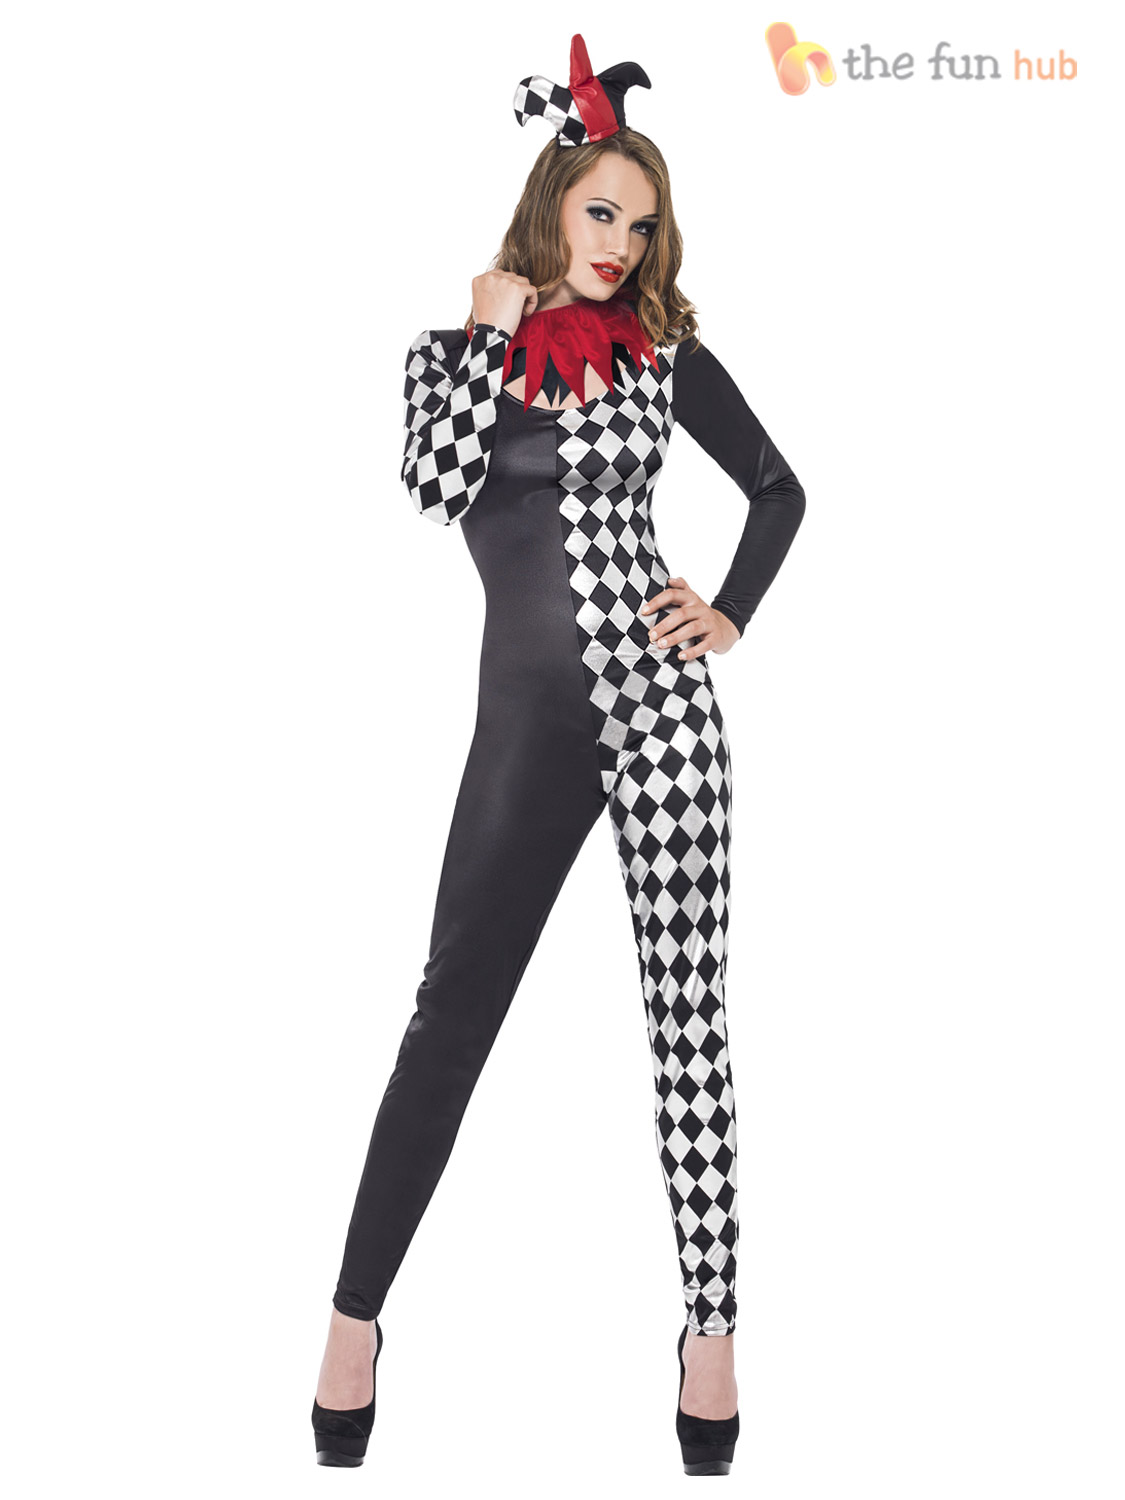 ladies sexy zombie clown harlequin jester halloween costume womens circus outfit ebay. Black Bedroom Furniture Sets. Home Design Ideas